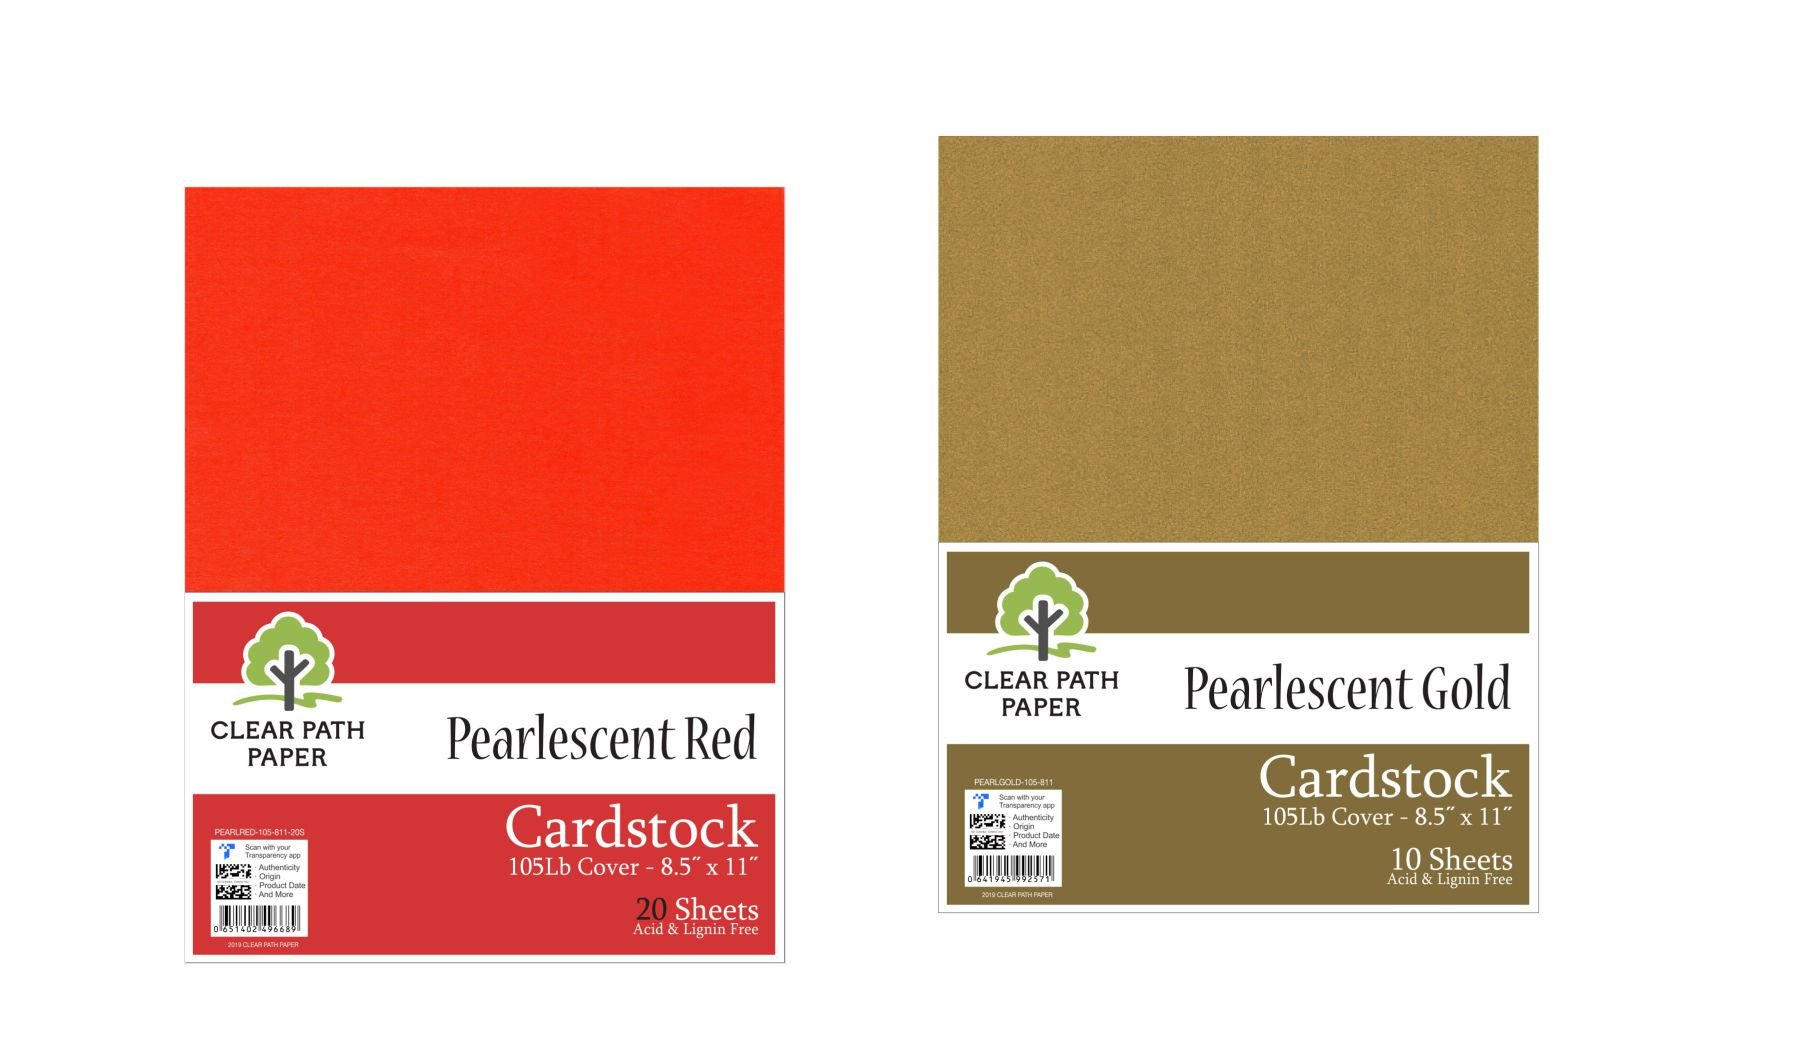 Image of an Amazon bundle of Clear Path Paper cardstock in Pearlescent Red and Pearlescent Gold